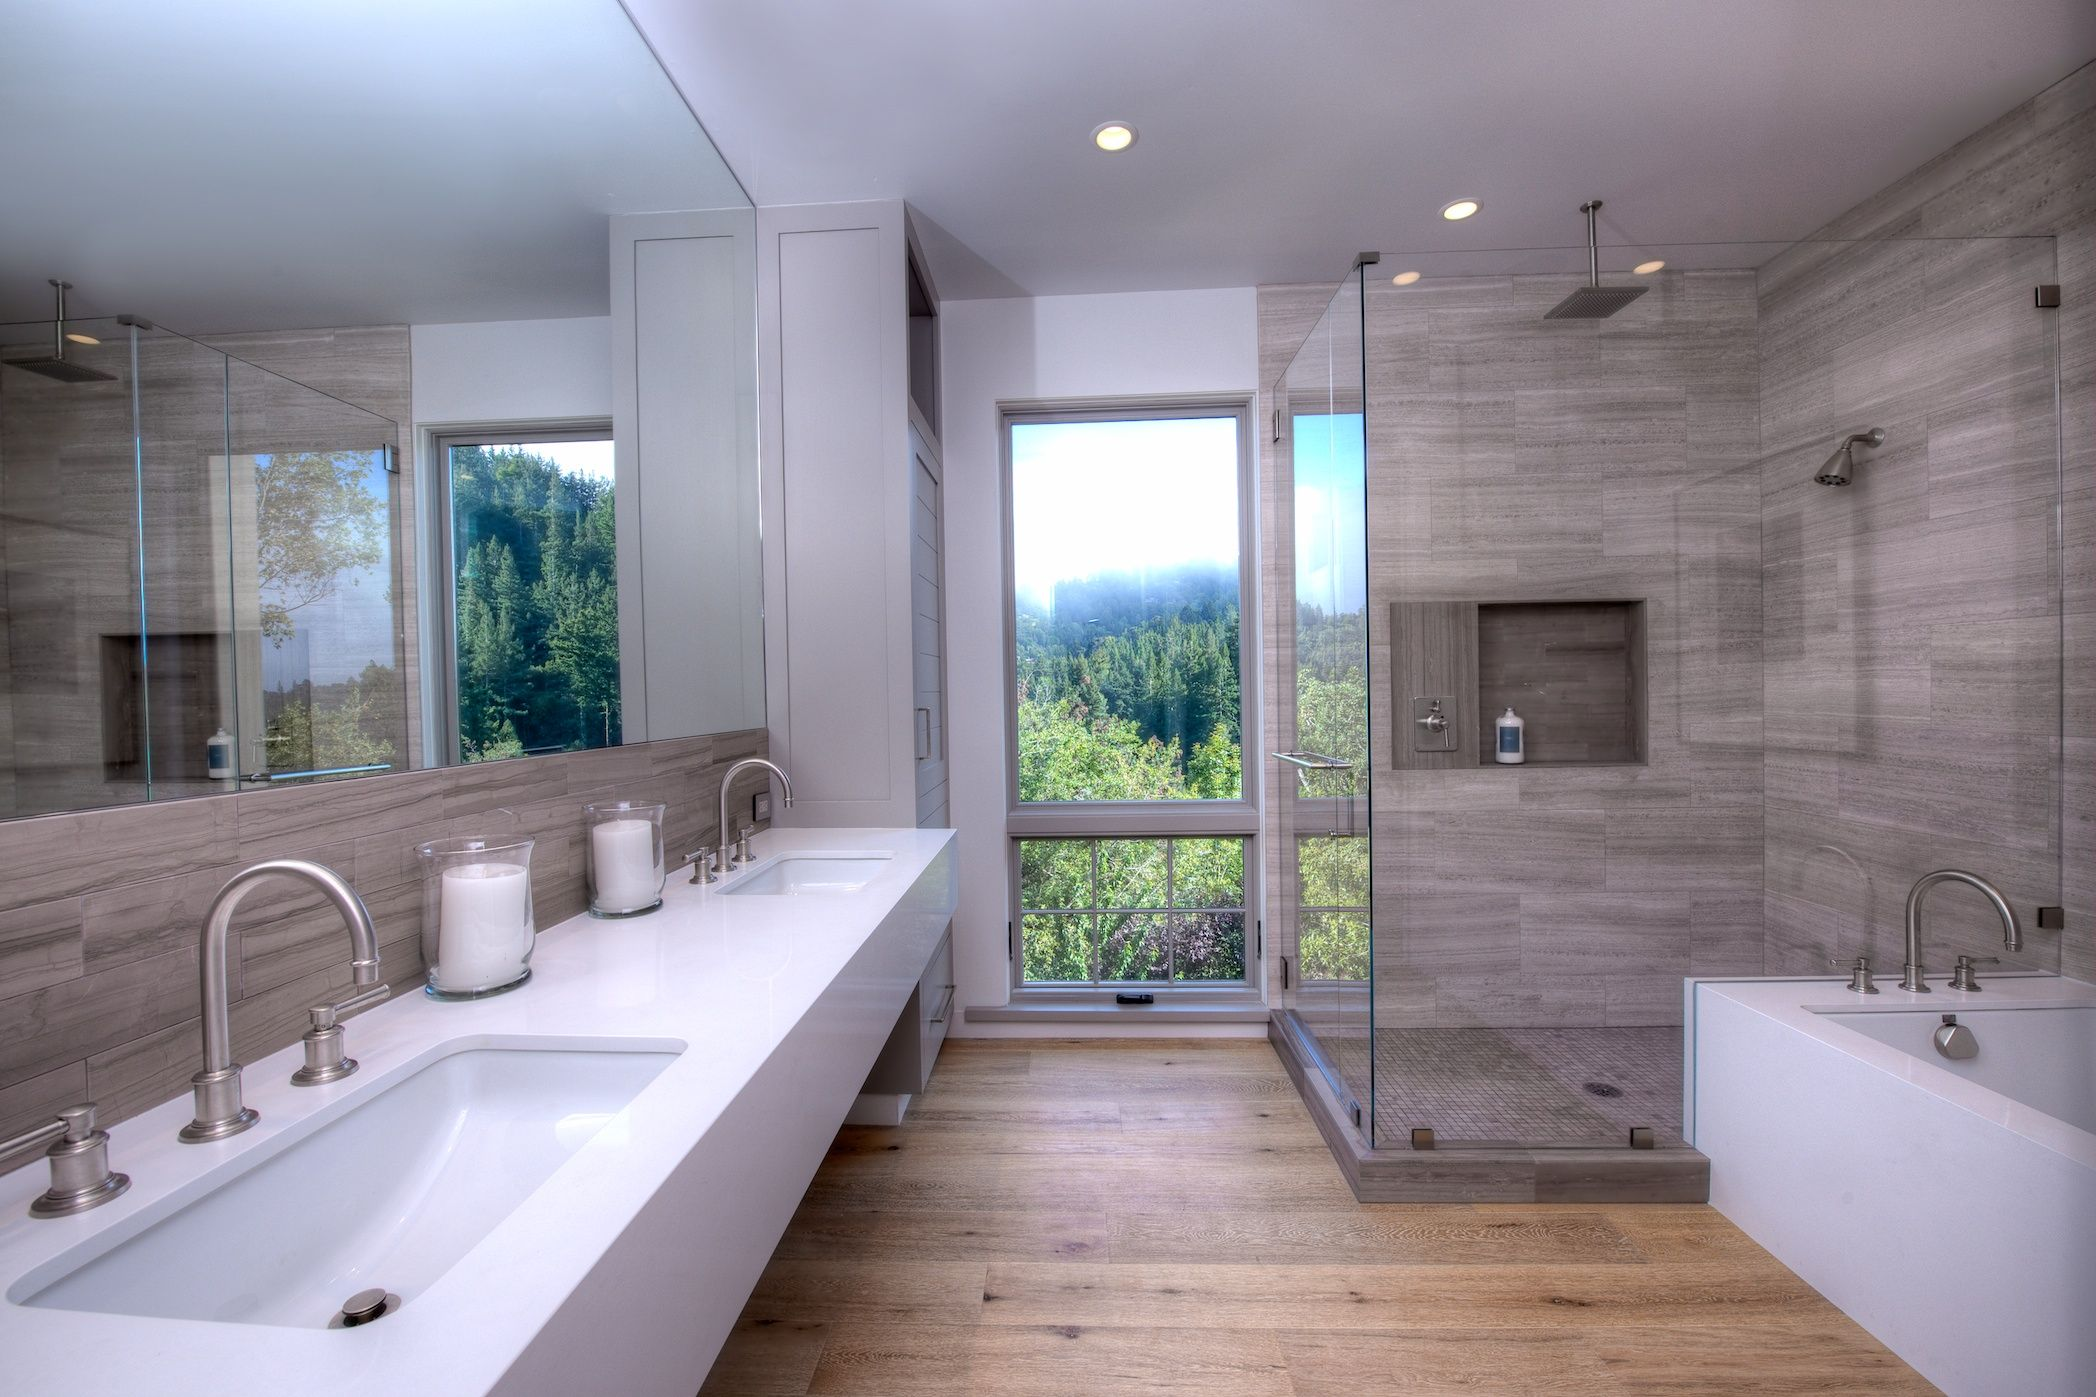 Modern Master Bathroom Designs: Urban Farmhouse Master Bathroom. Shower And Backsplash